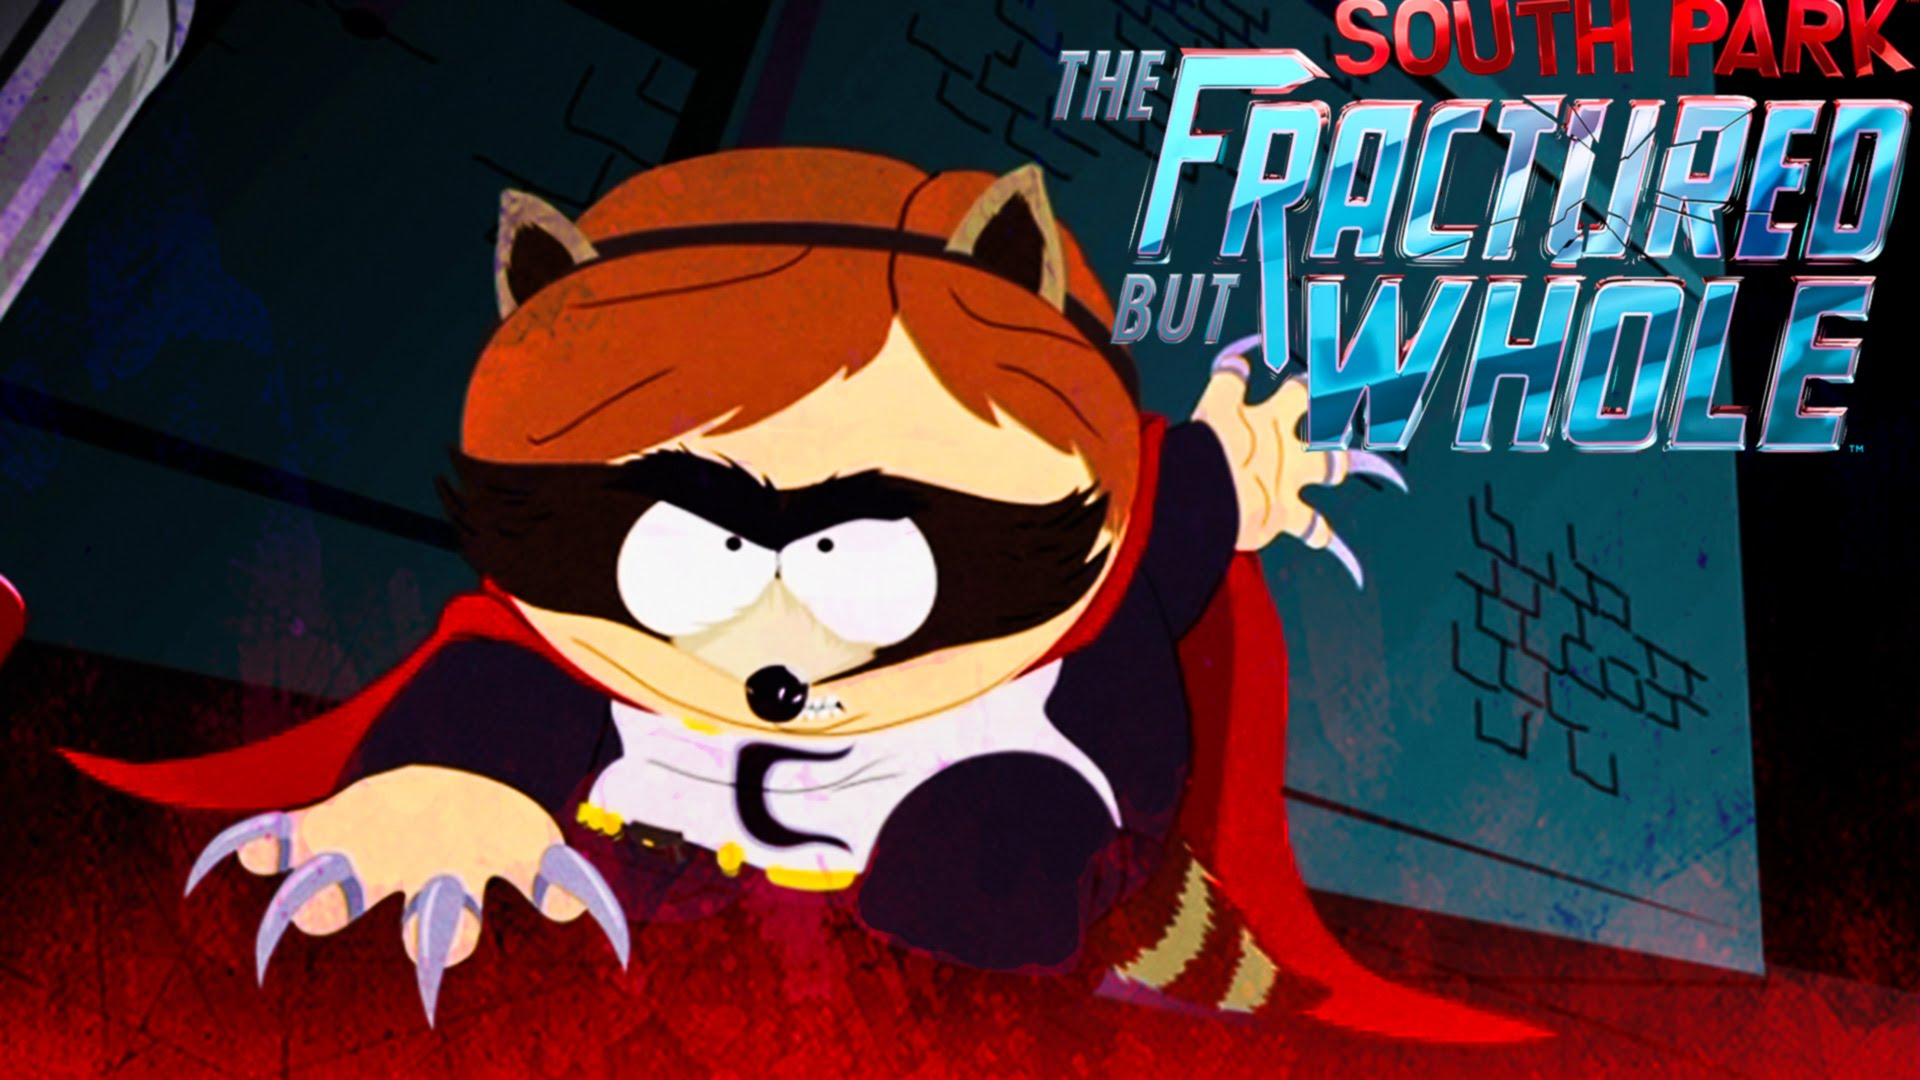 South Park: The Fractured But Whole - Best RPG of E3 2017 - Nominee